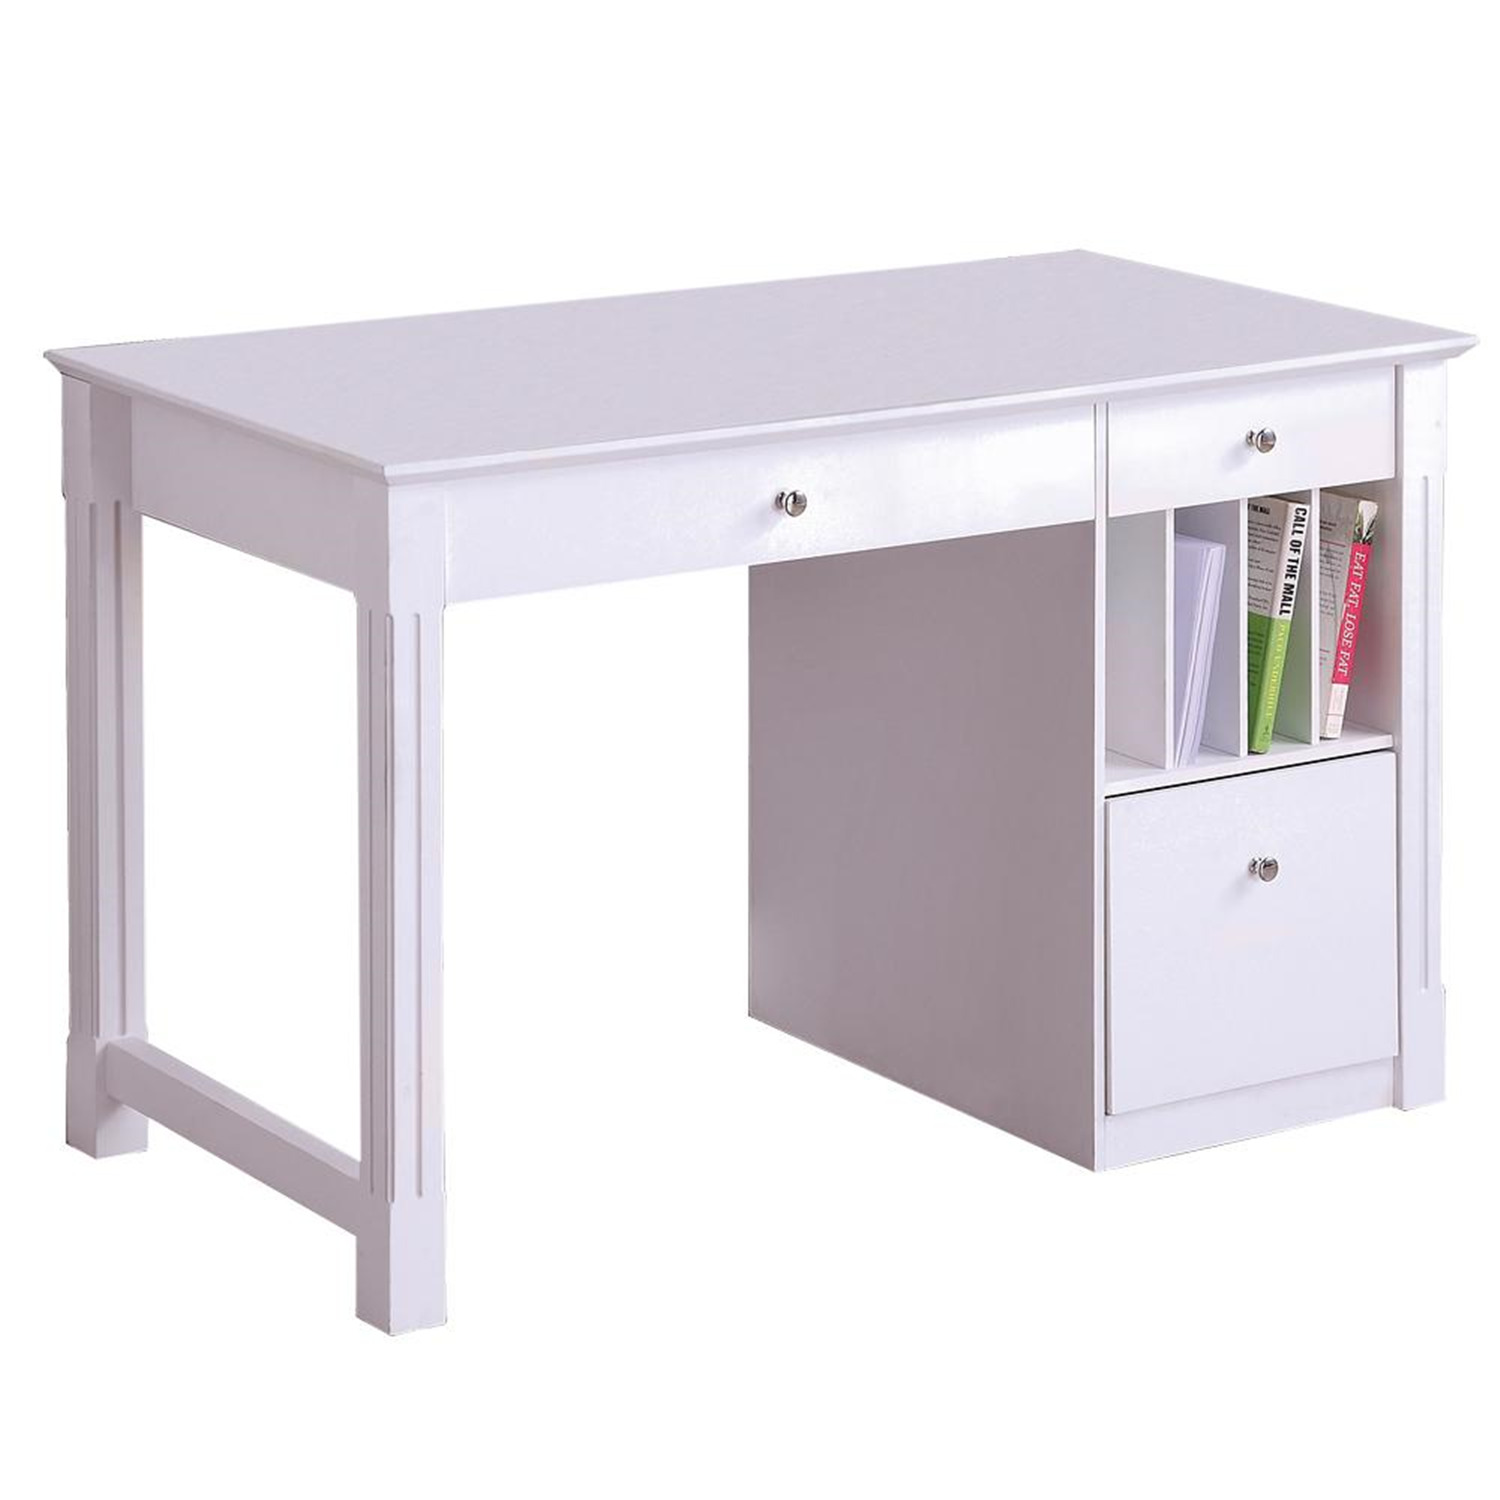 Walker Edison Deluxe Solid Wood Desk - White by OJ Commerce DW48D30WH